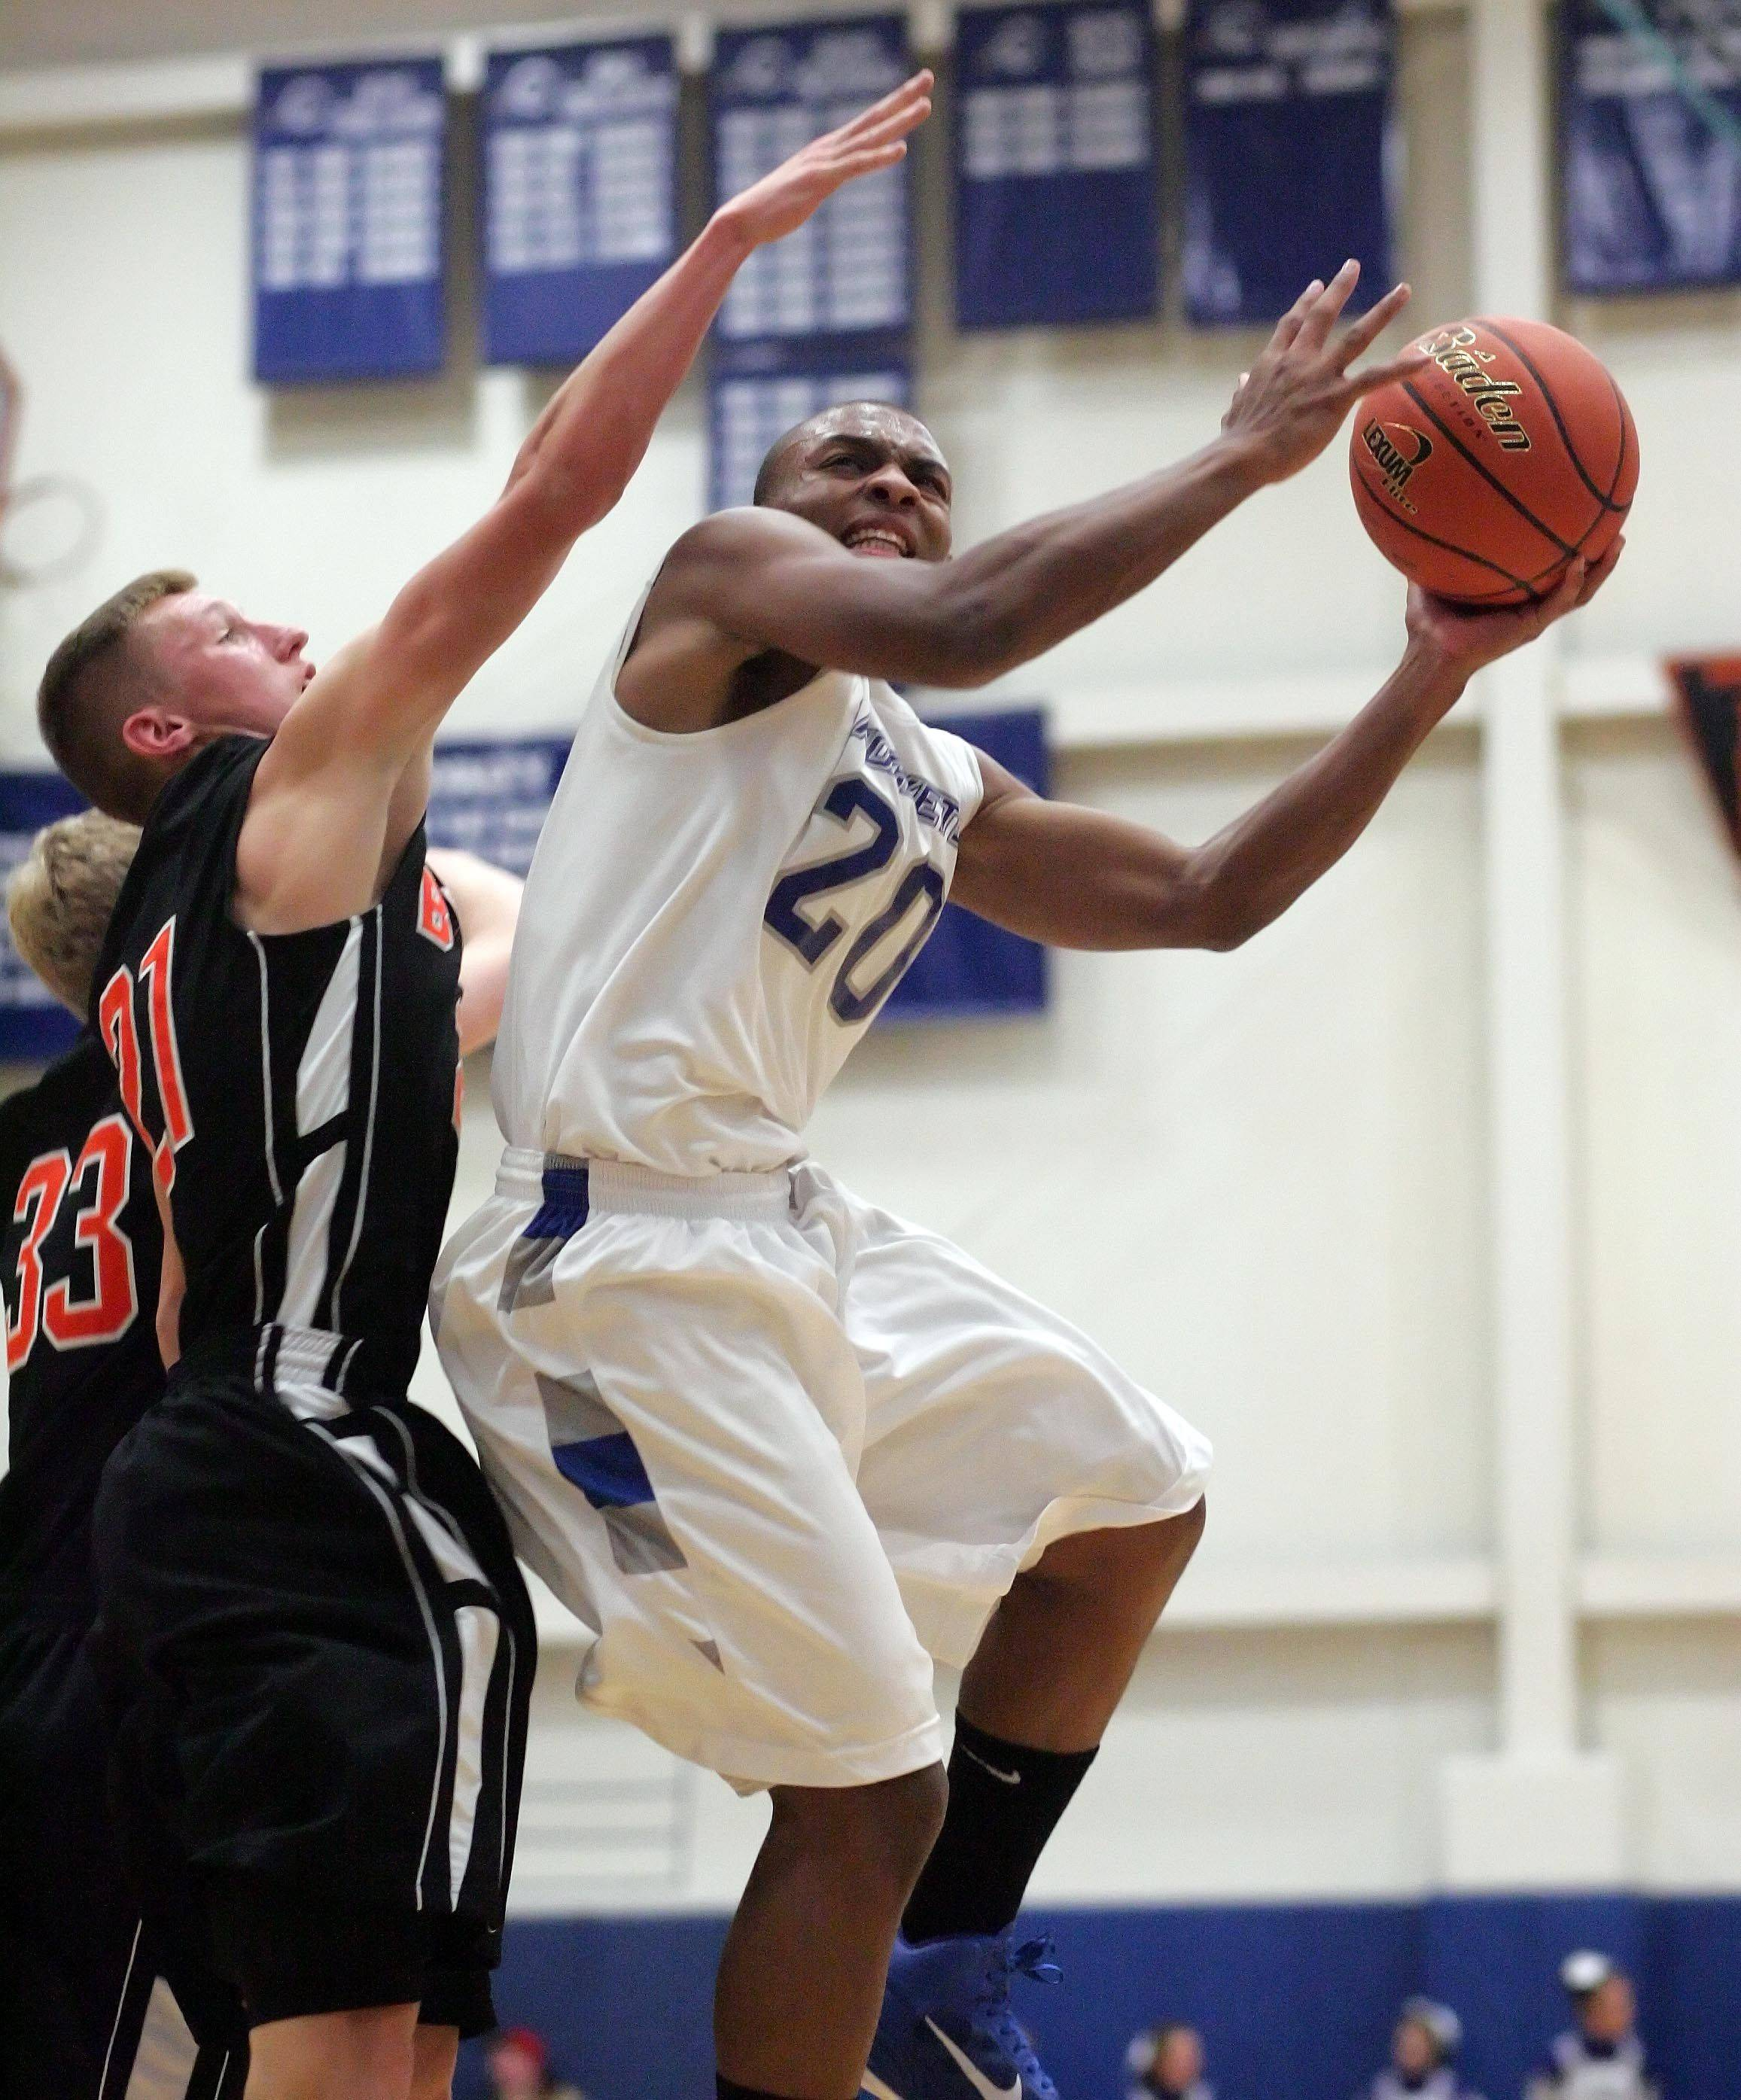 Burlington Central guard Ray Hunnicutt moves to the hoop.